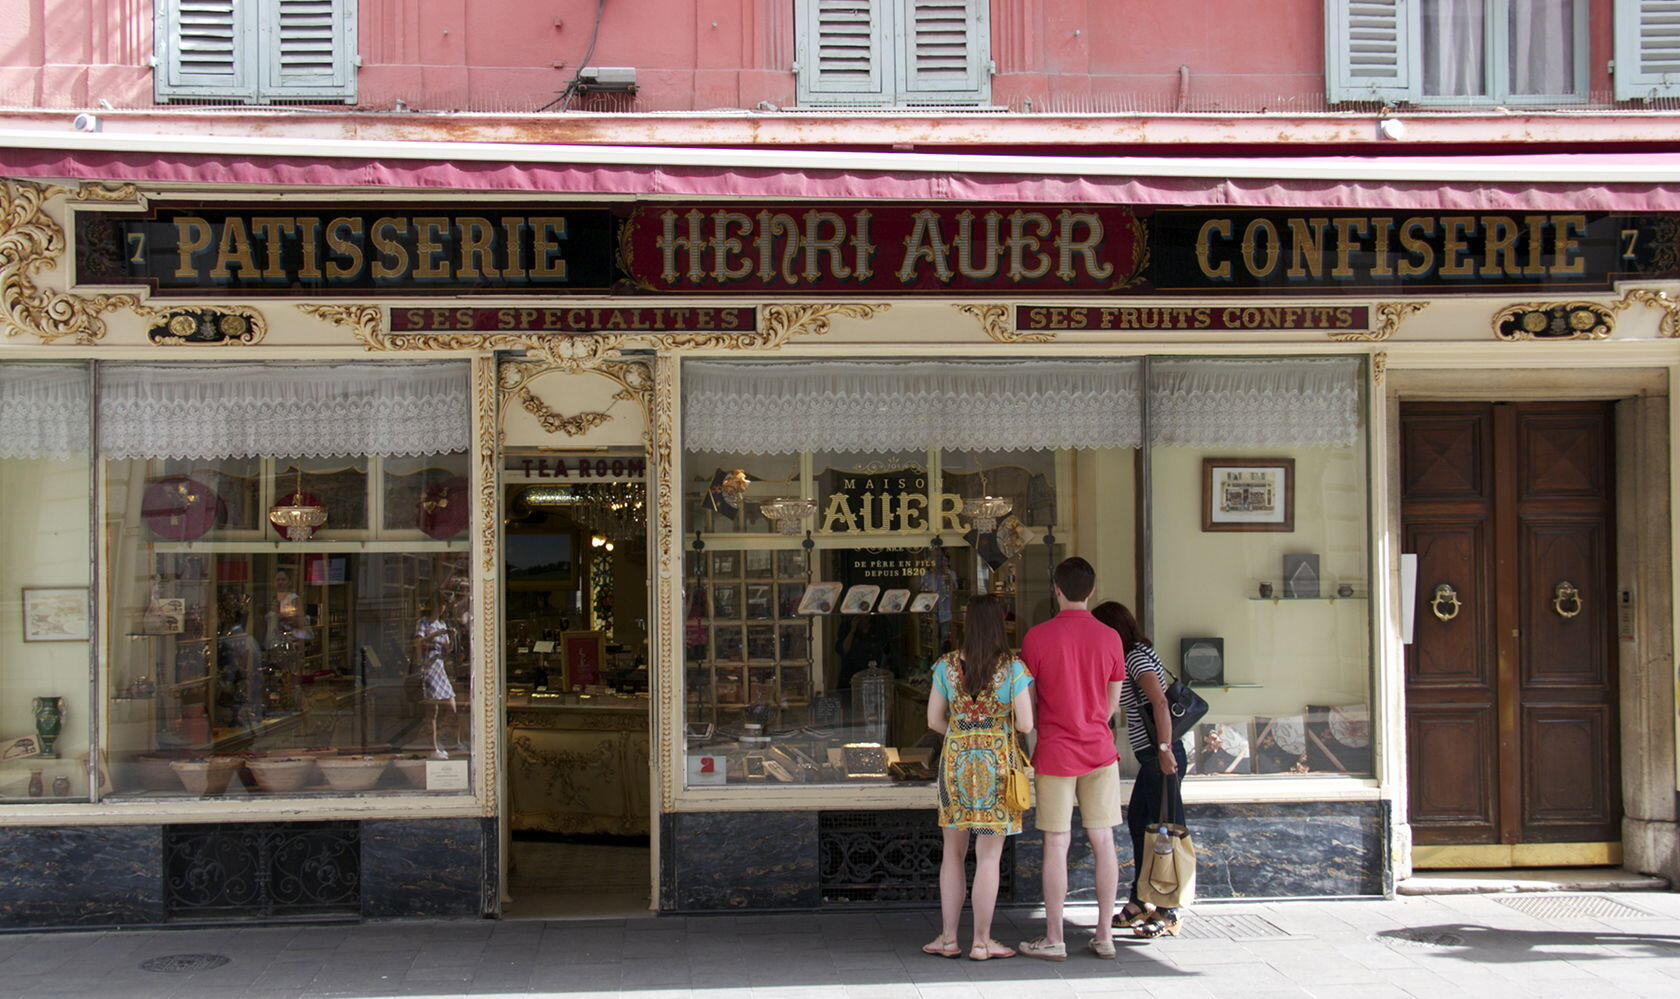 Maison Auer Fruits Confits Nice French Riviera